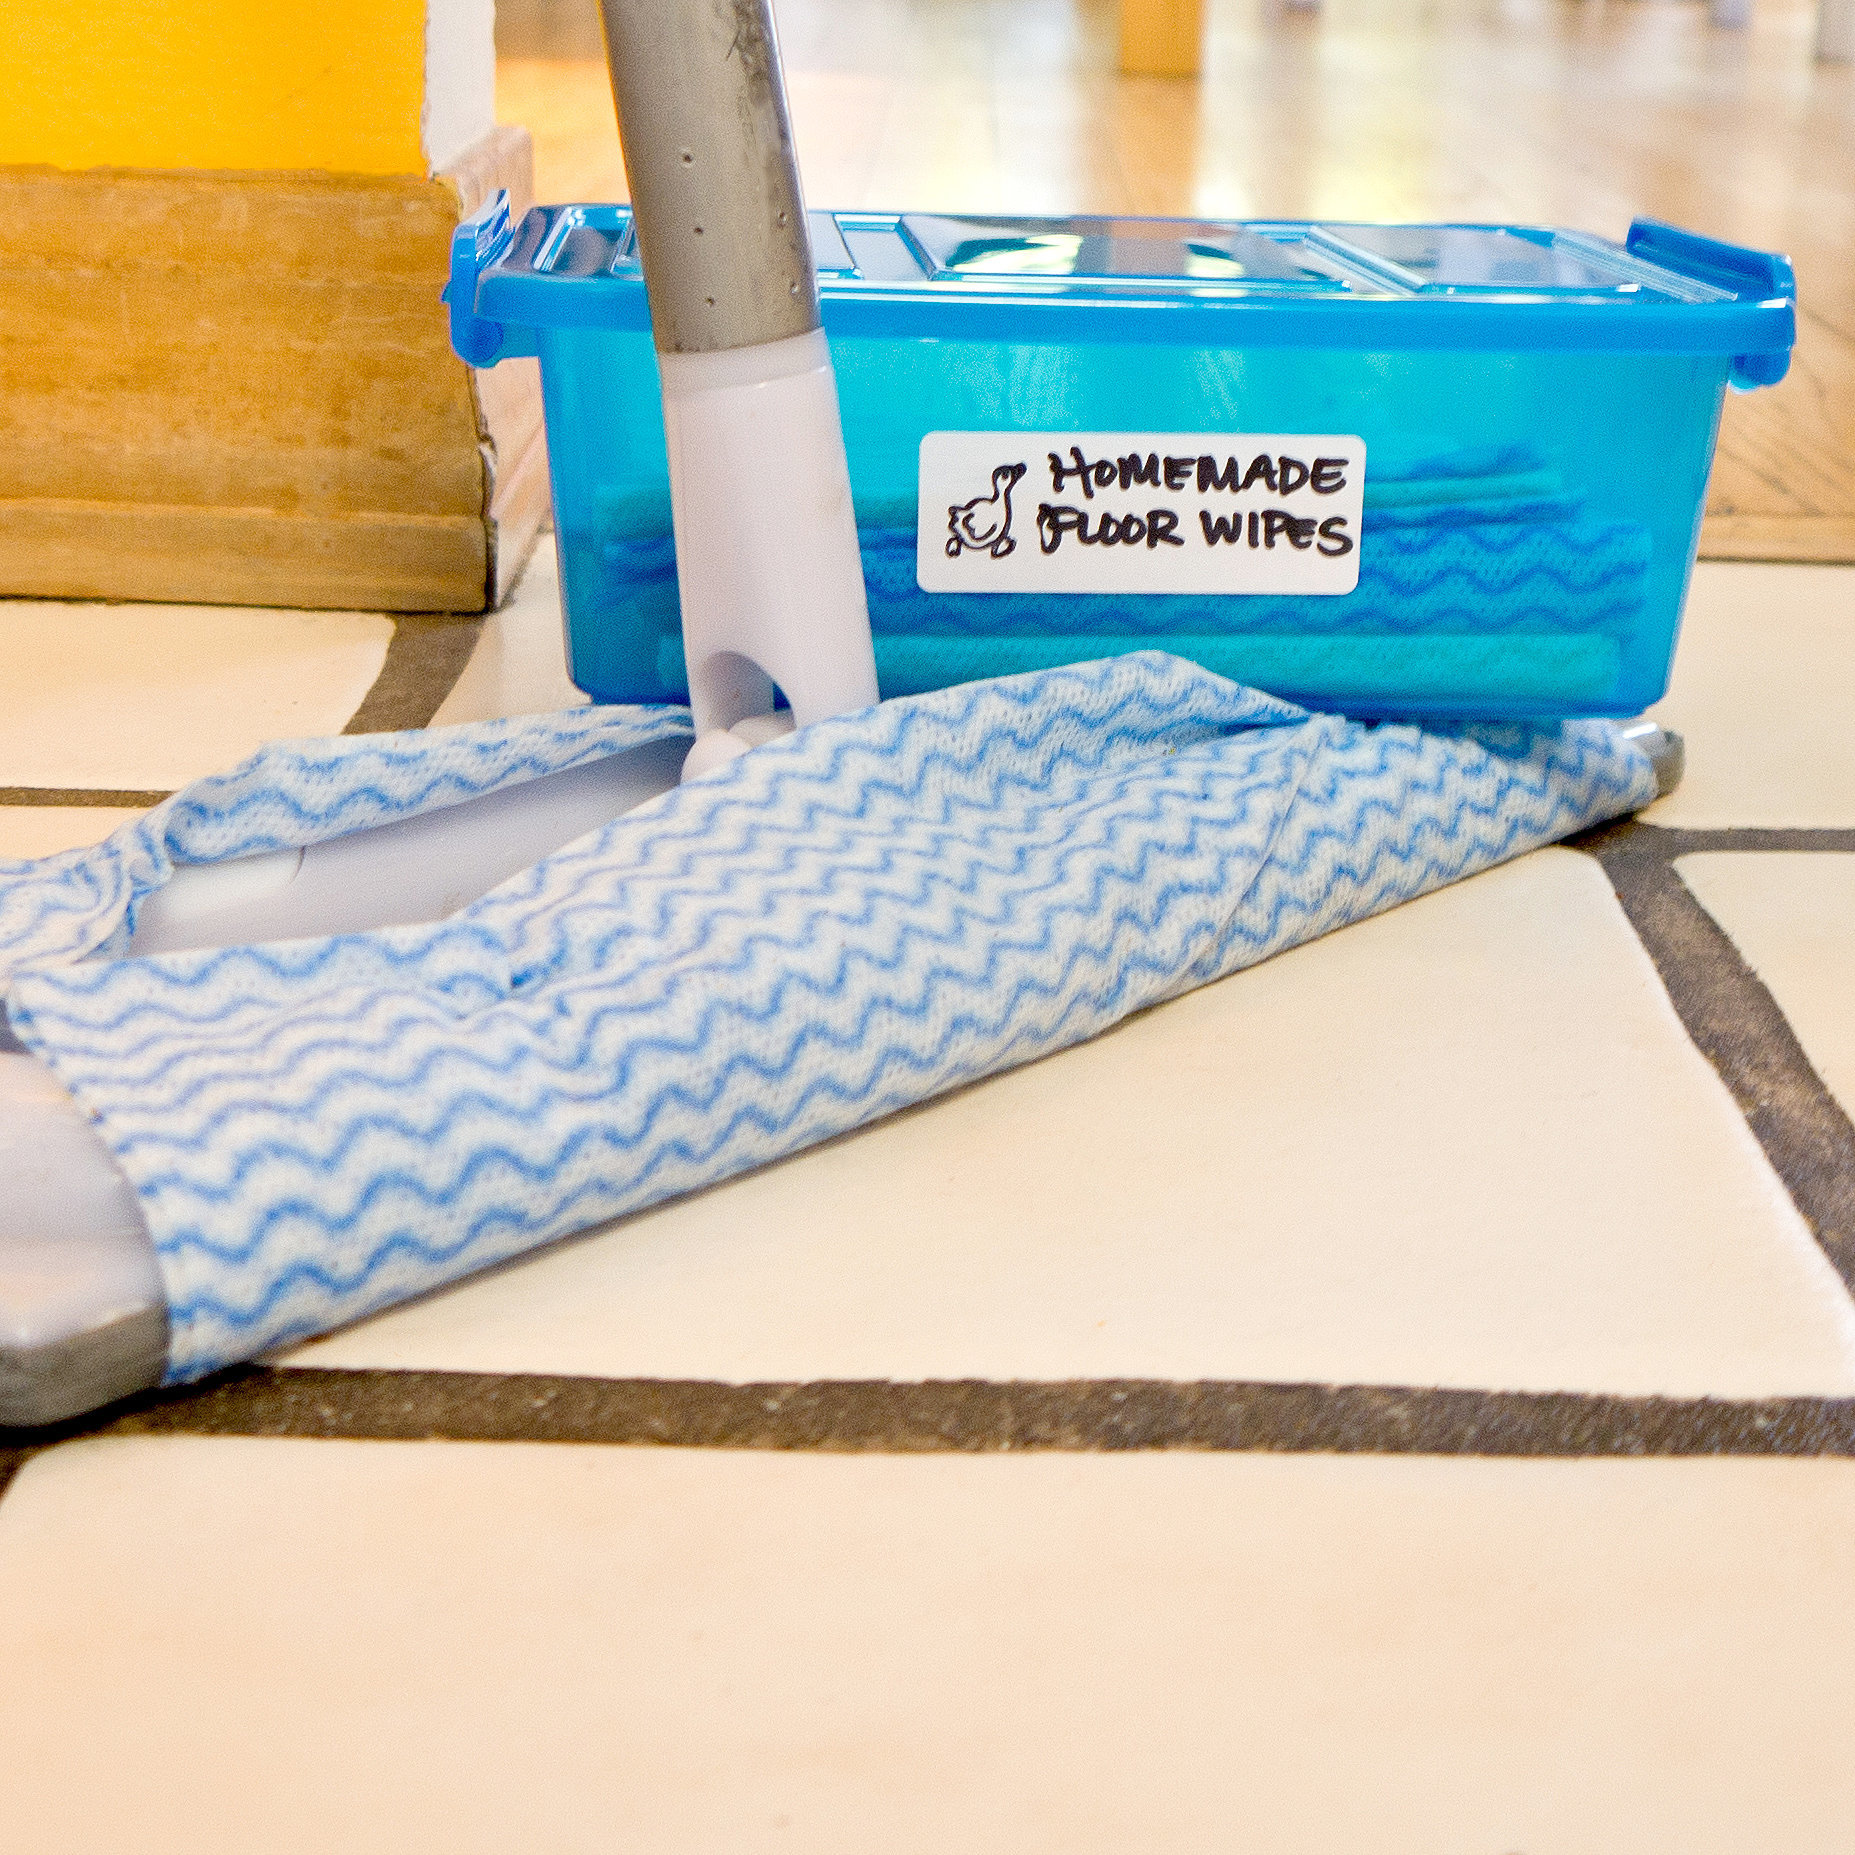 Homemade Reusable Floor Wipes Popsugar Smart Living